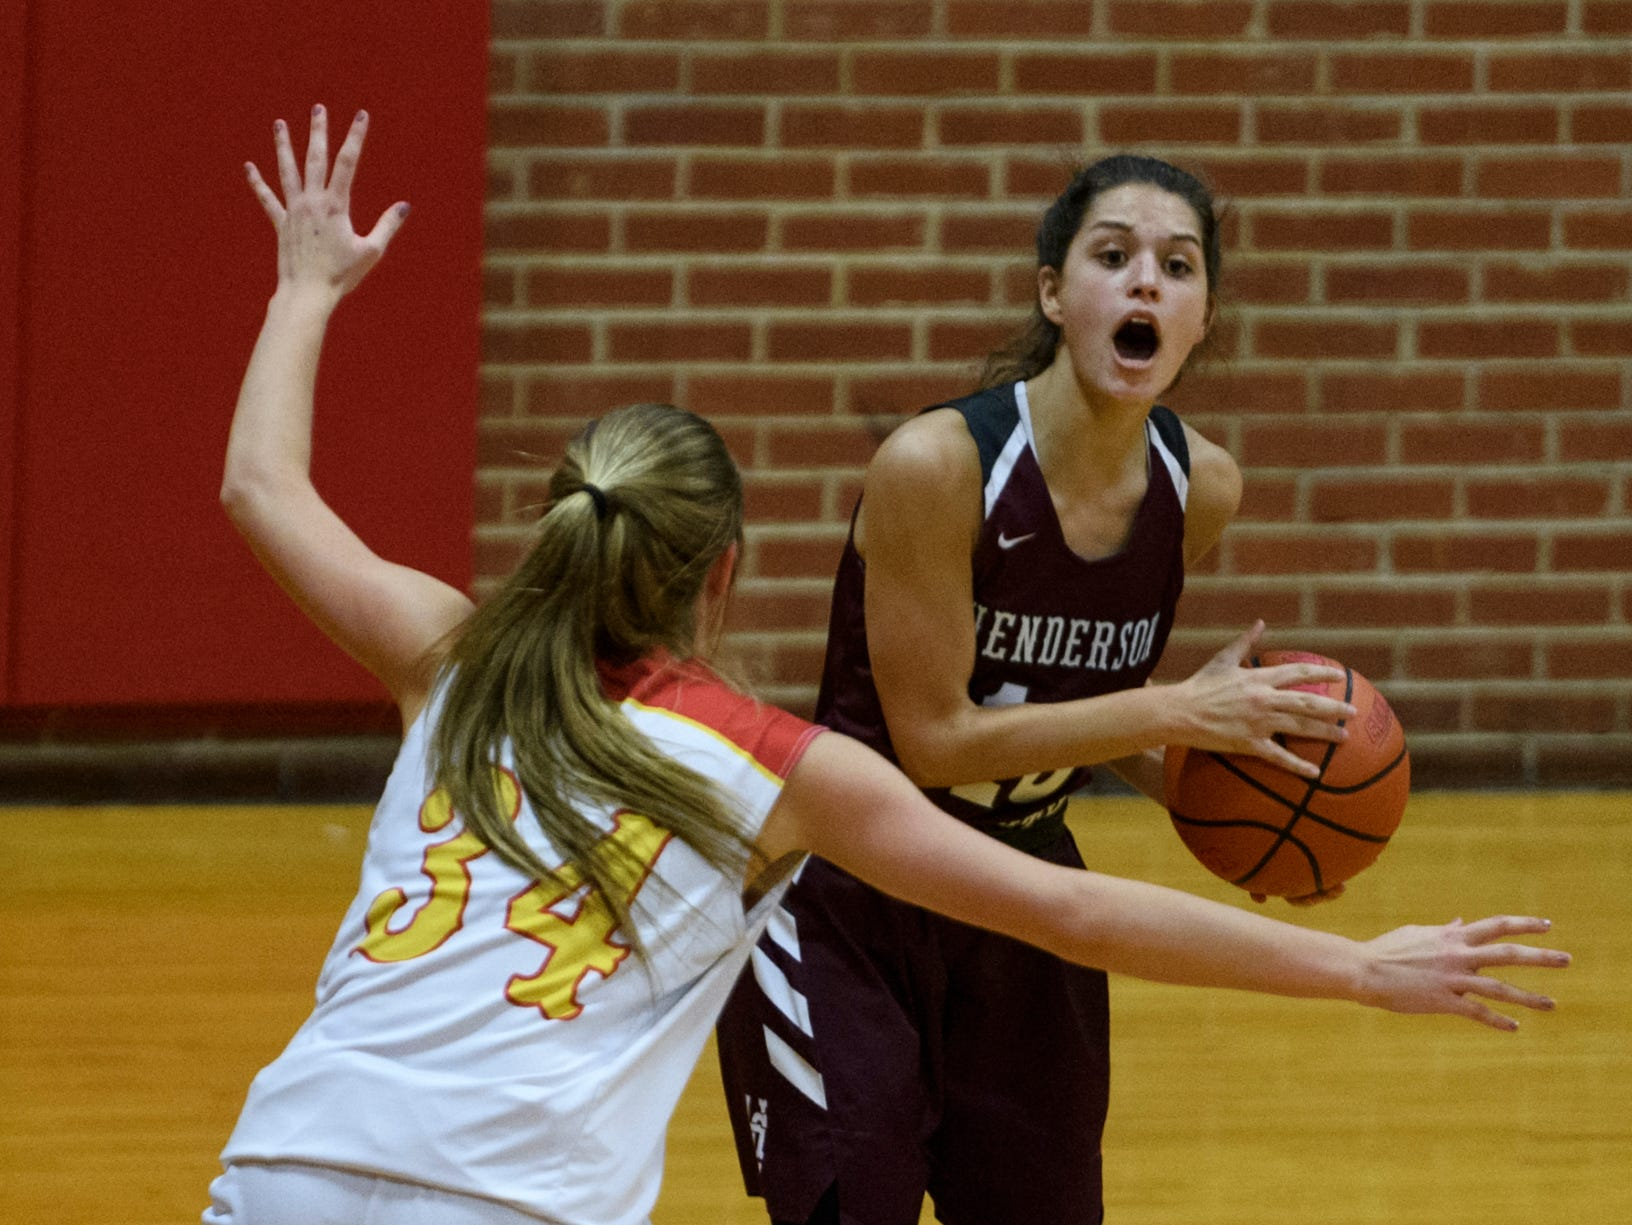 Henderson County's Katie Rideout (10) yells for her teammates to get into an open passing position as Mater Dei's Kelsey Carr (34) guards her during the second quarter at Mater Dei High school in Evansville, Tuesday, Dec. 11, 2018. The Lady Colonels defeated the Wildcats 53-40.